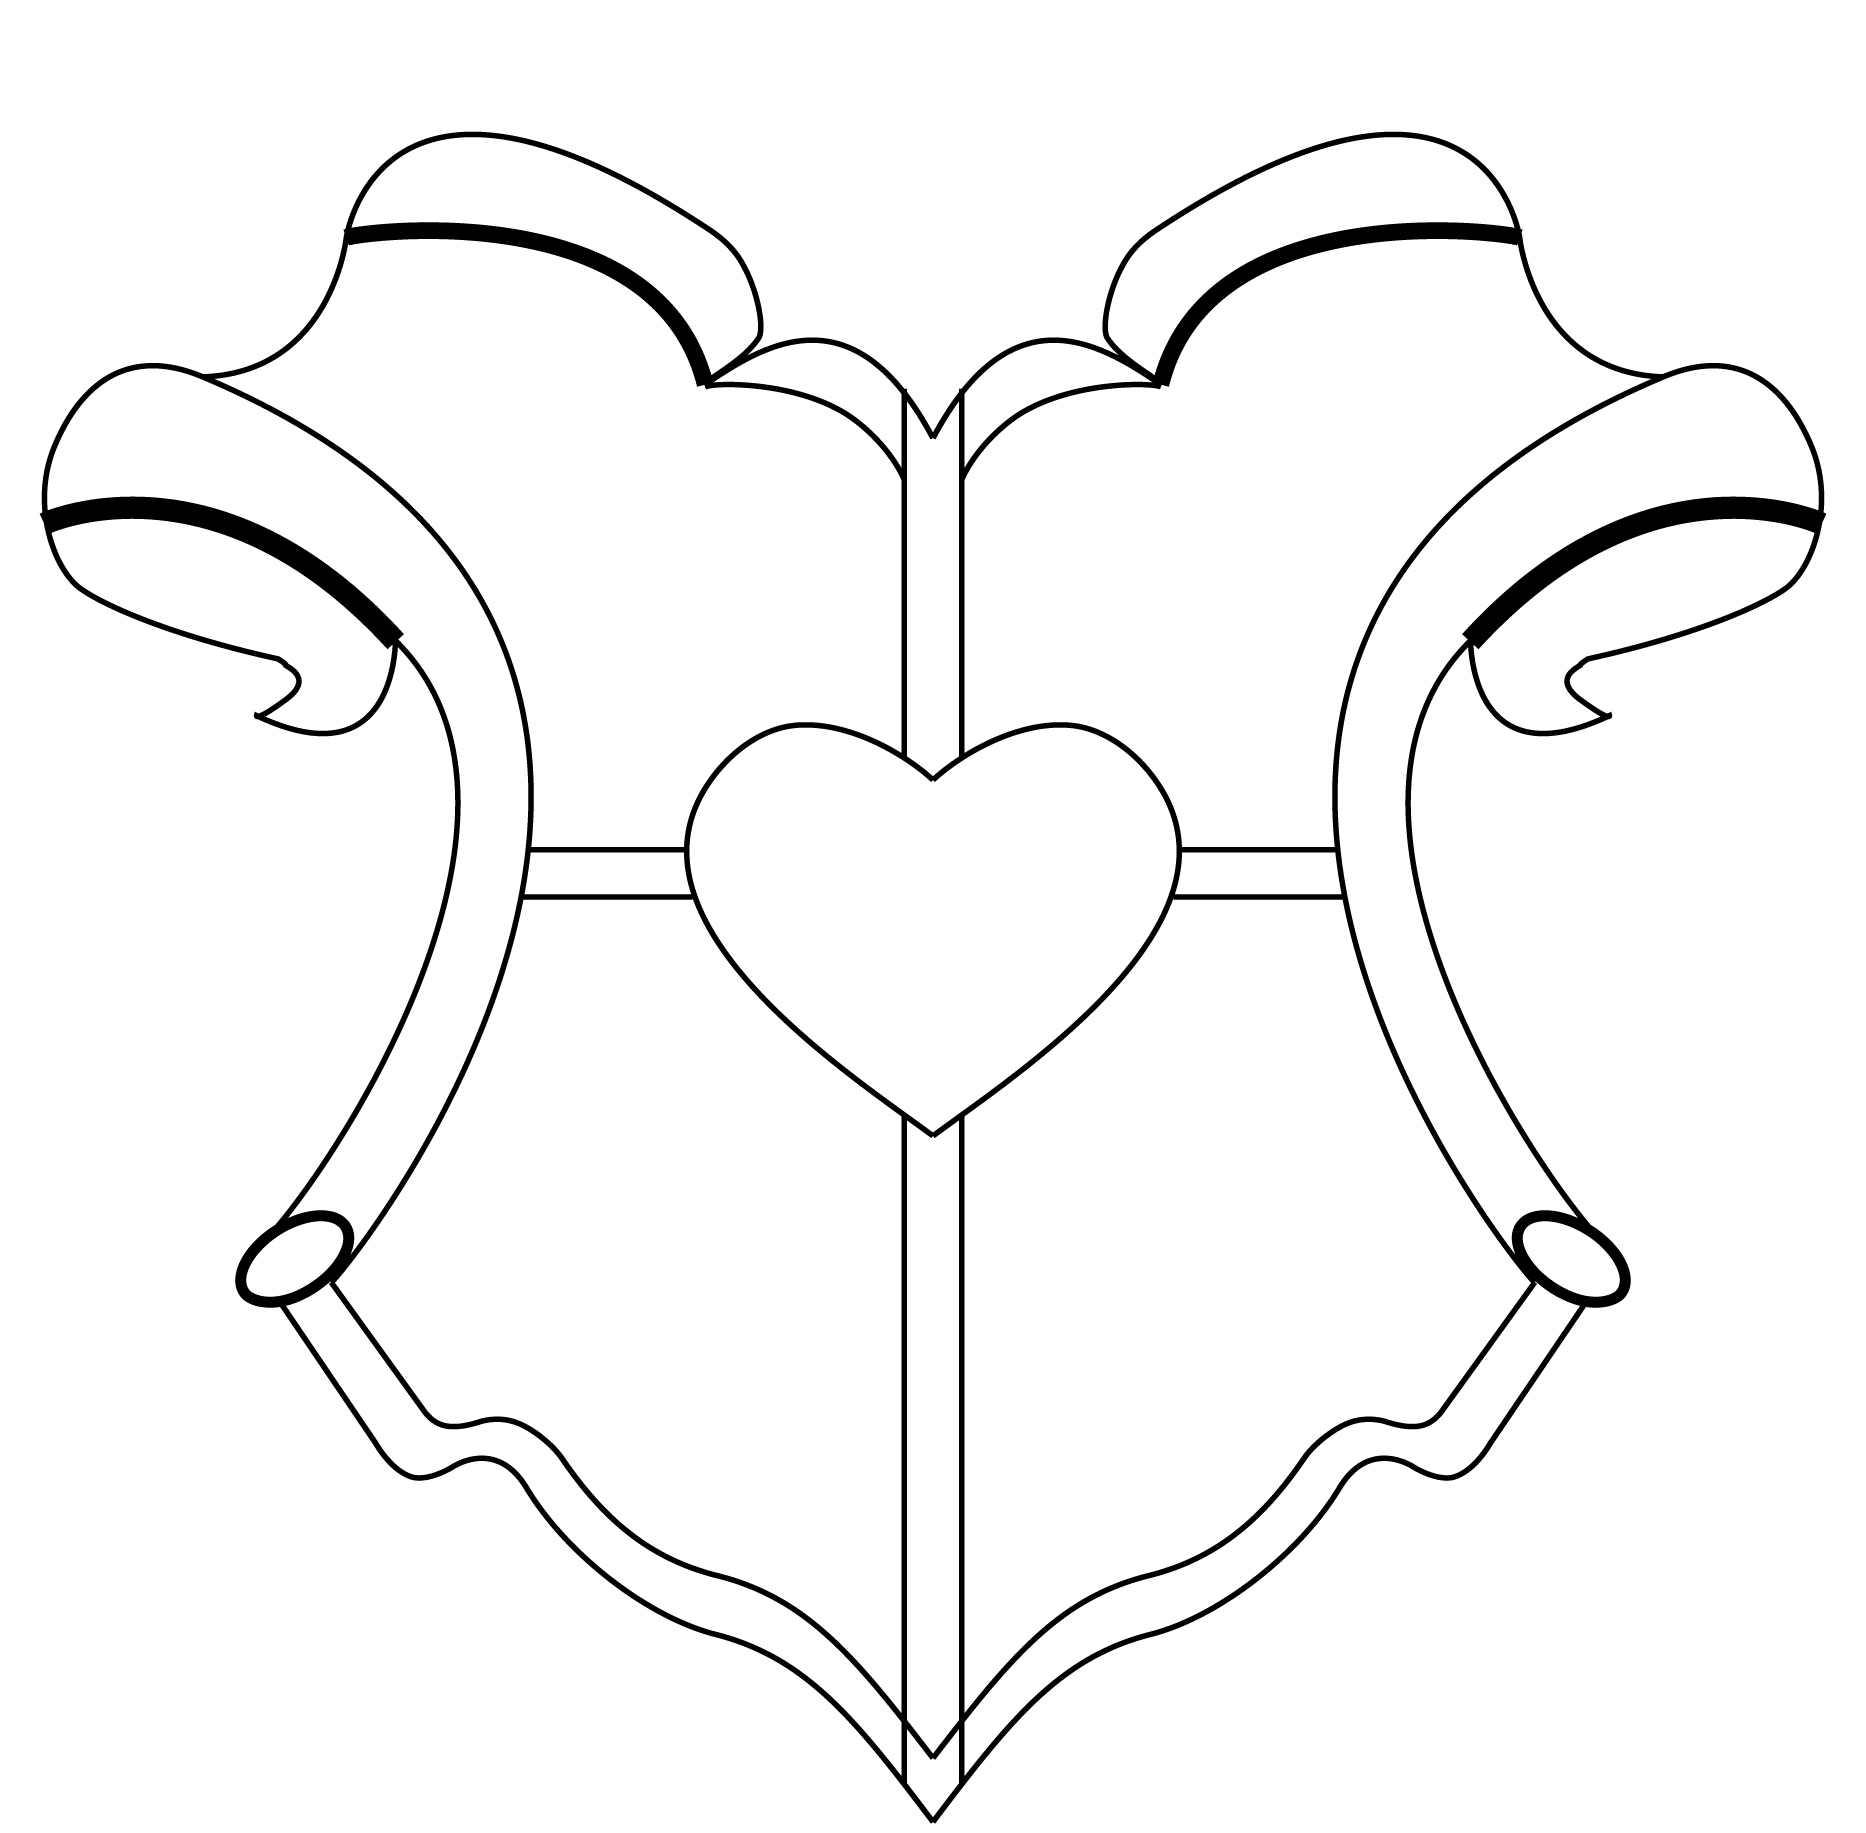 Templates  clipart heraldic Heraldic clipart co shield Crest